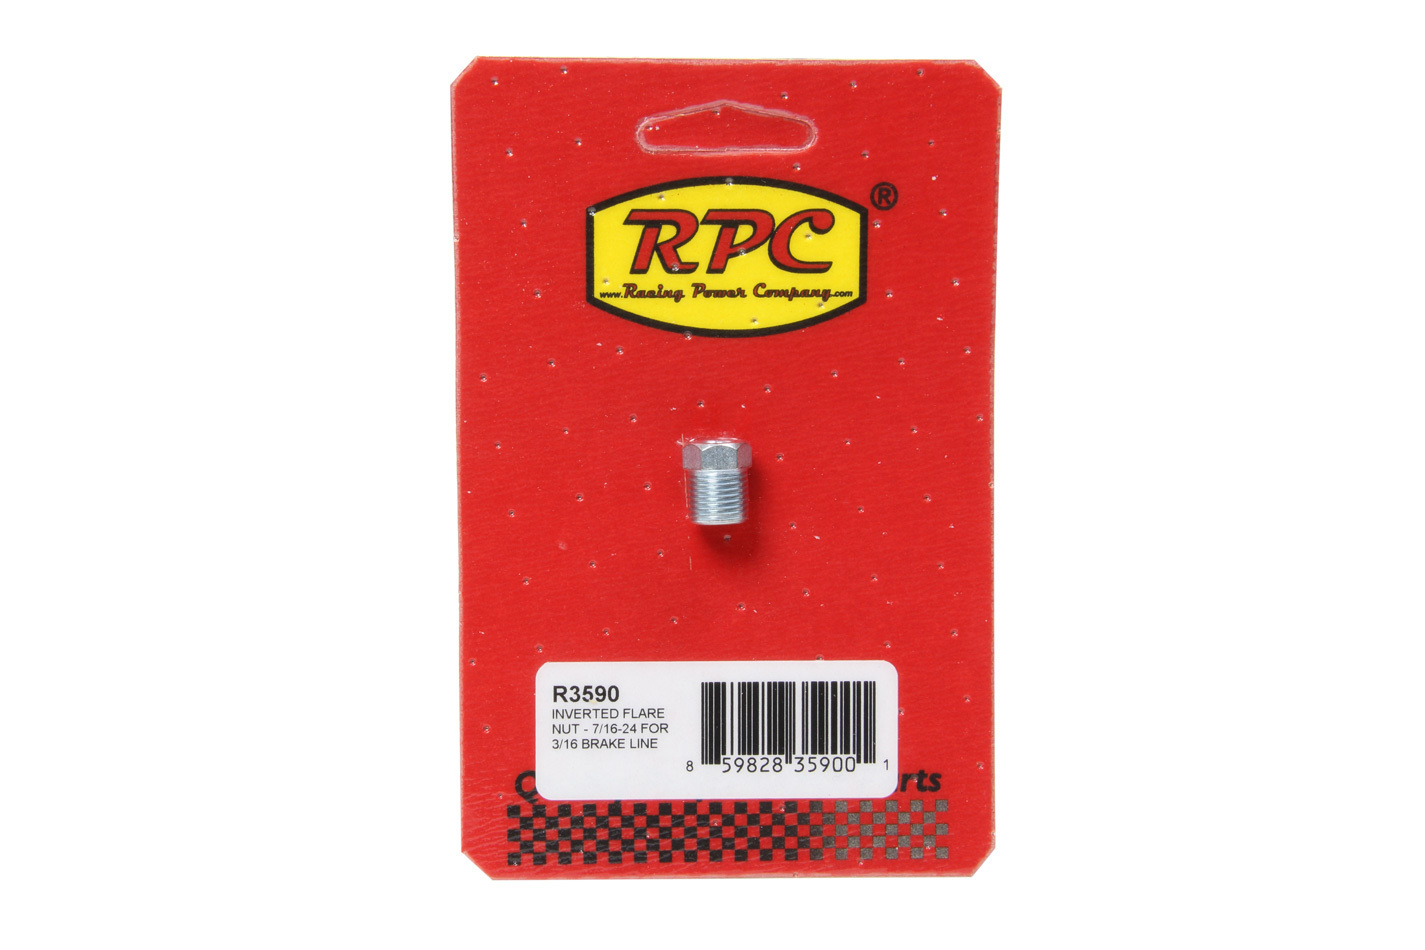 Racing Power Company R3590 Fitting, Flare Nut, 7/16-24 in Inverted Flare Male, Steel, Zinc Oxide, 3/16 in Hardline, Each